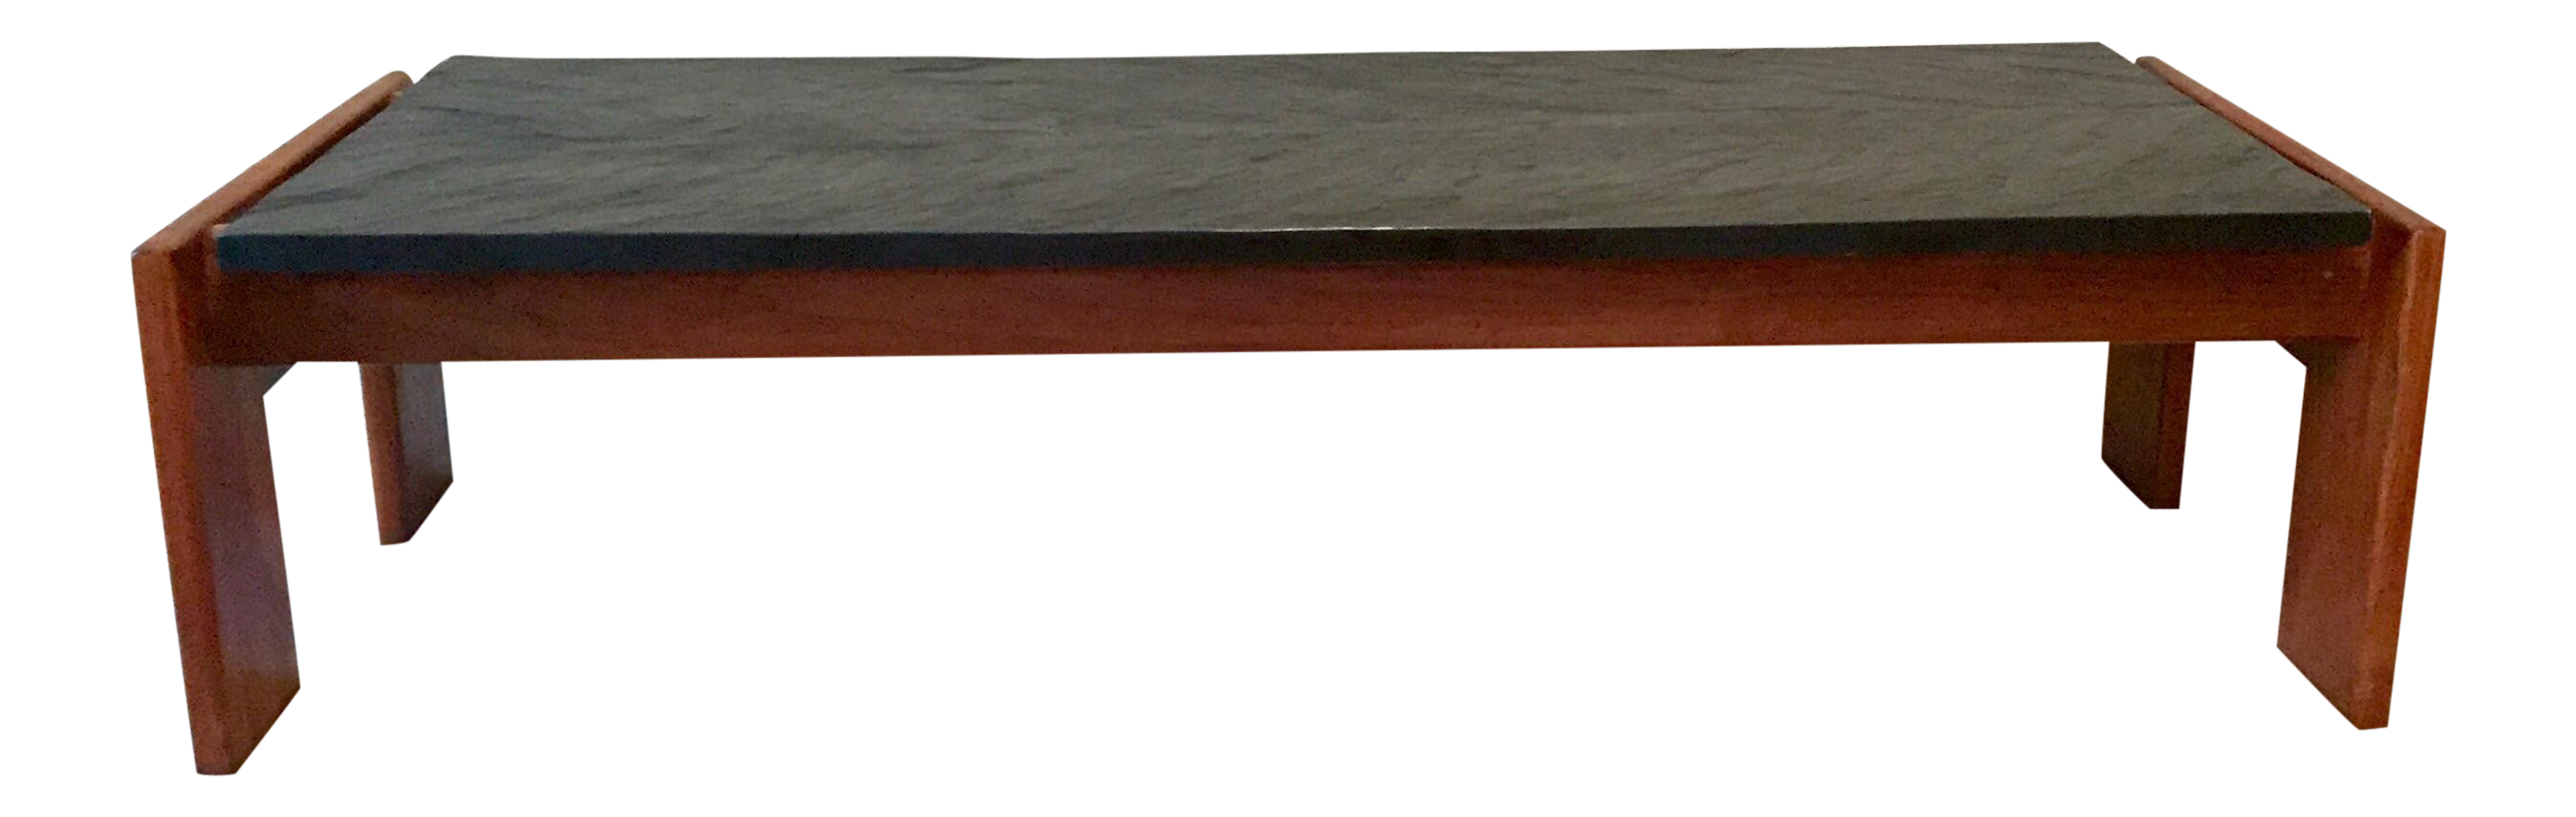 Adrian Pearsall Slate Top Coffee Table